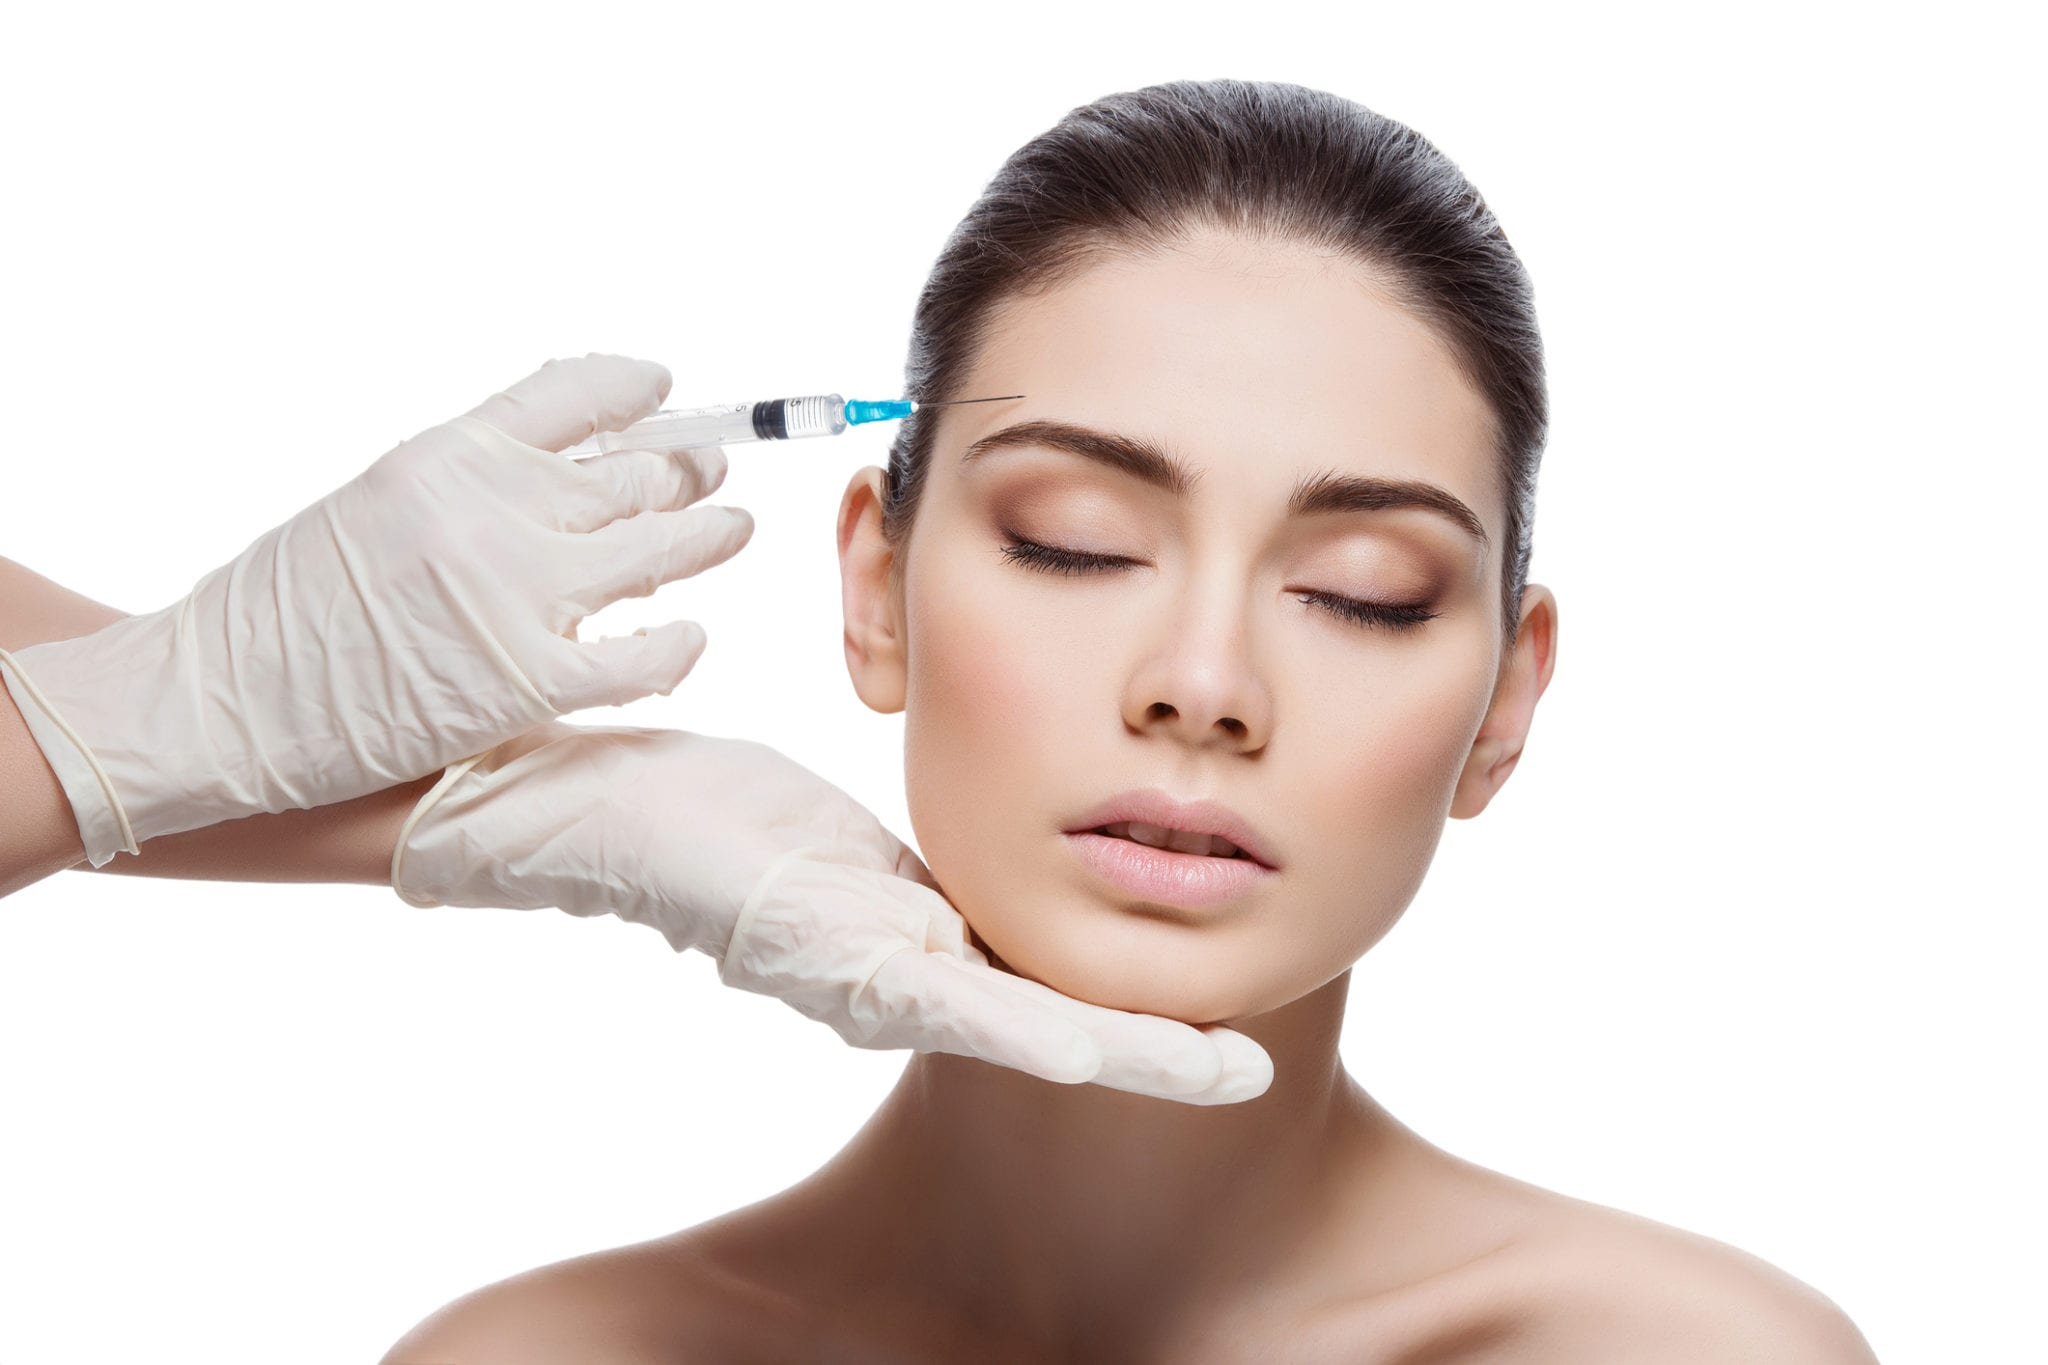 Image result for botox injections istock images